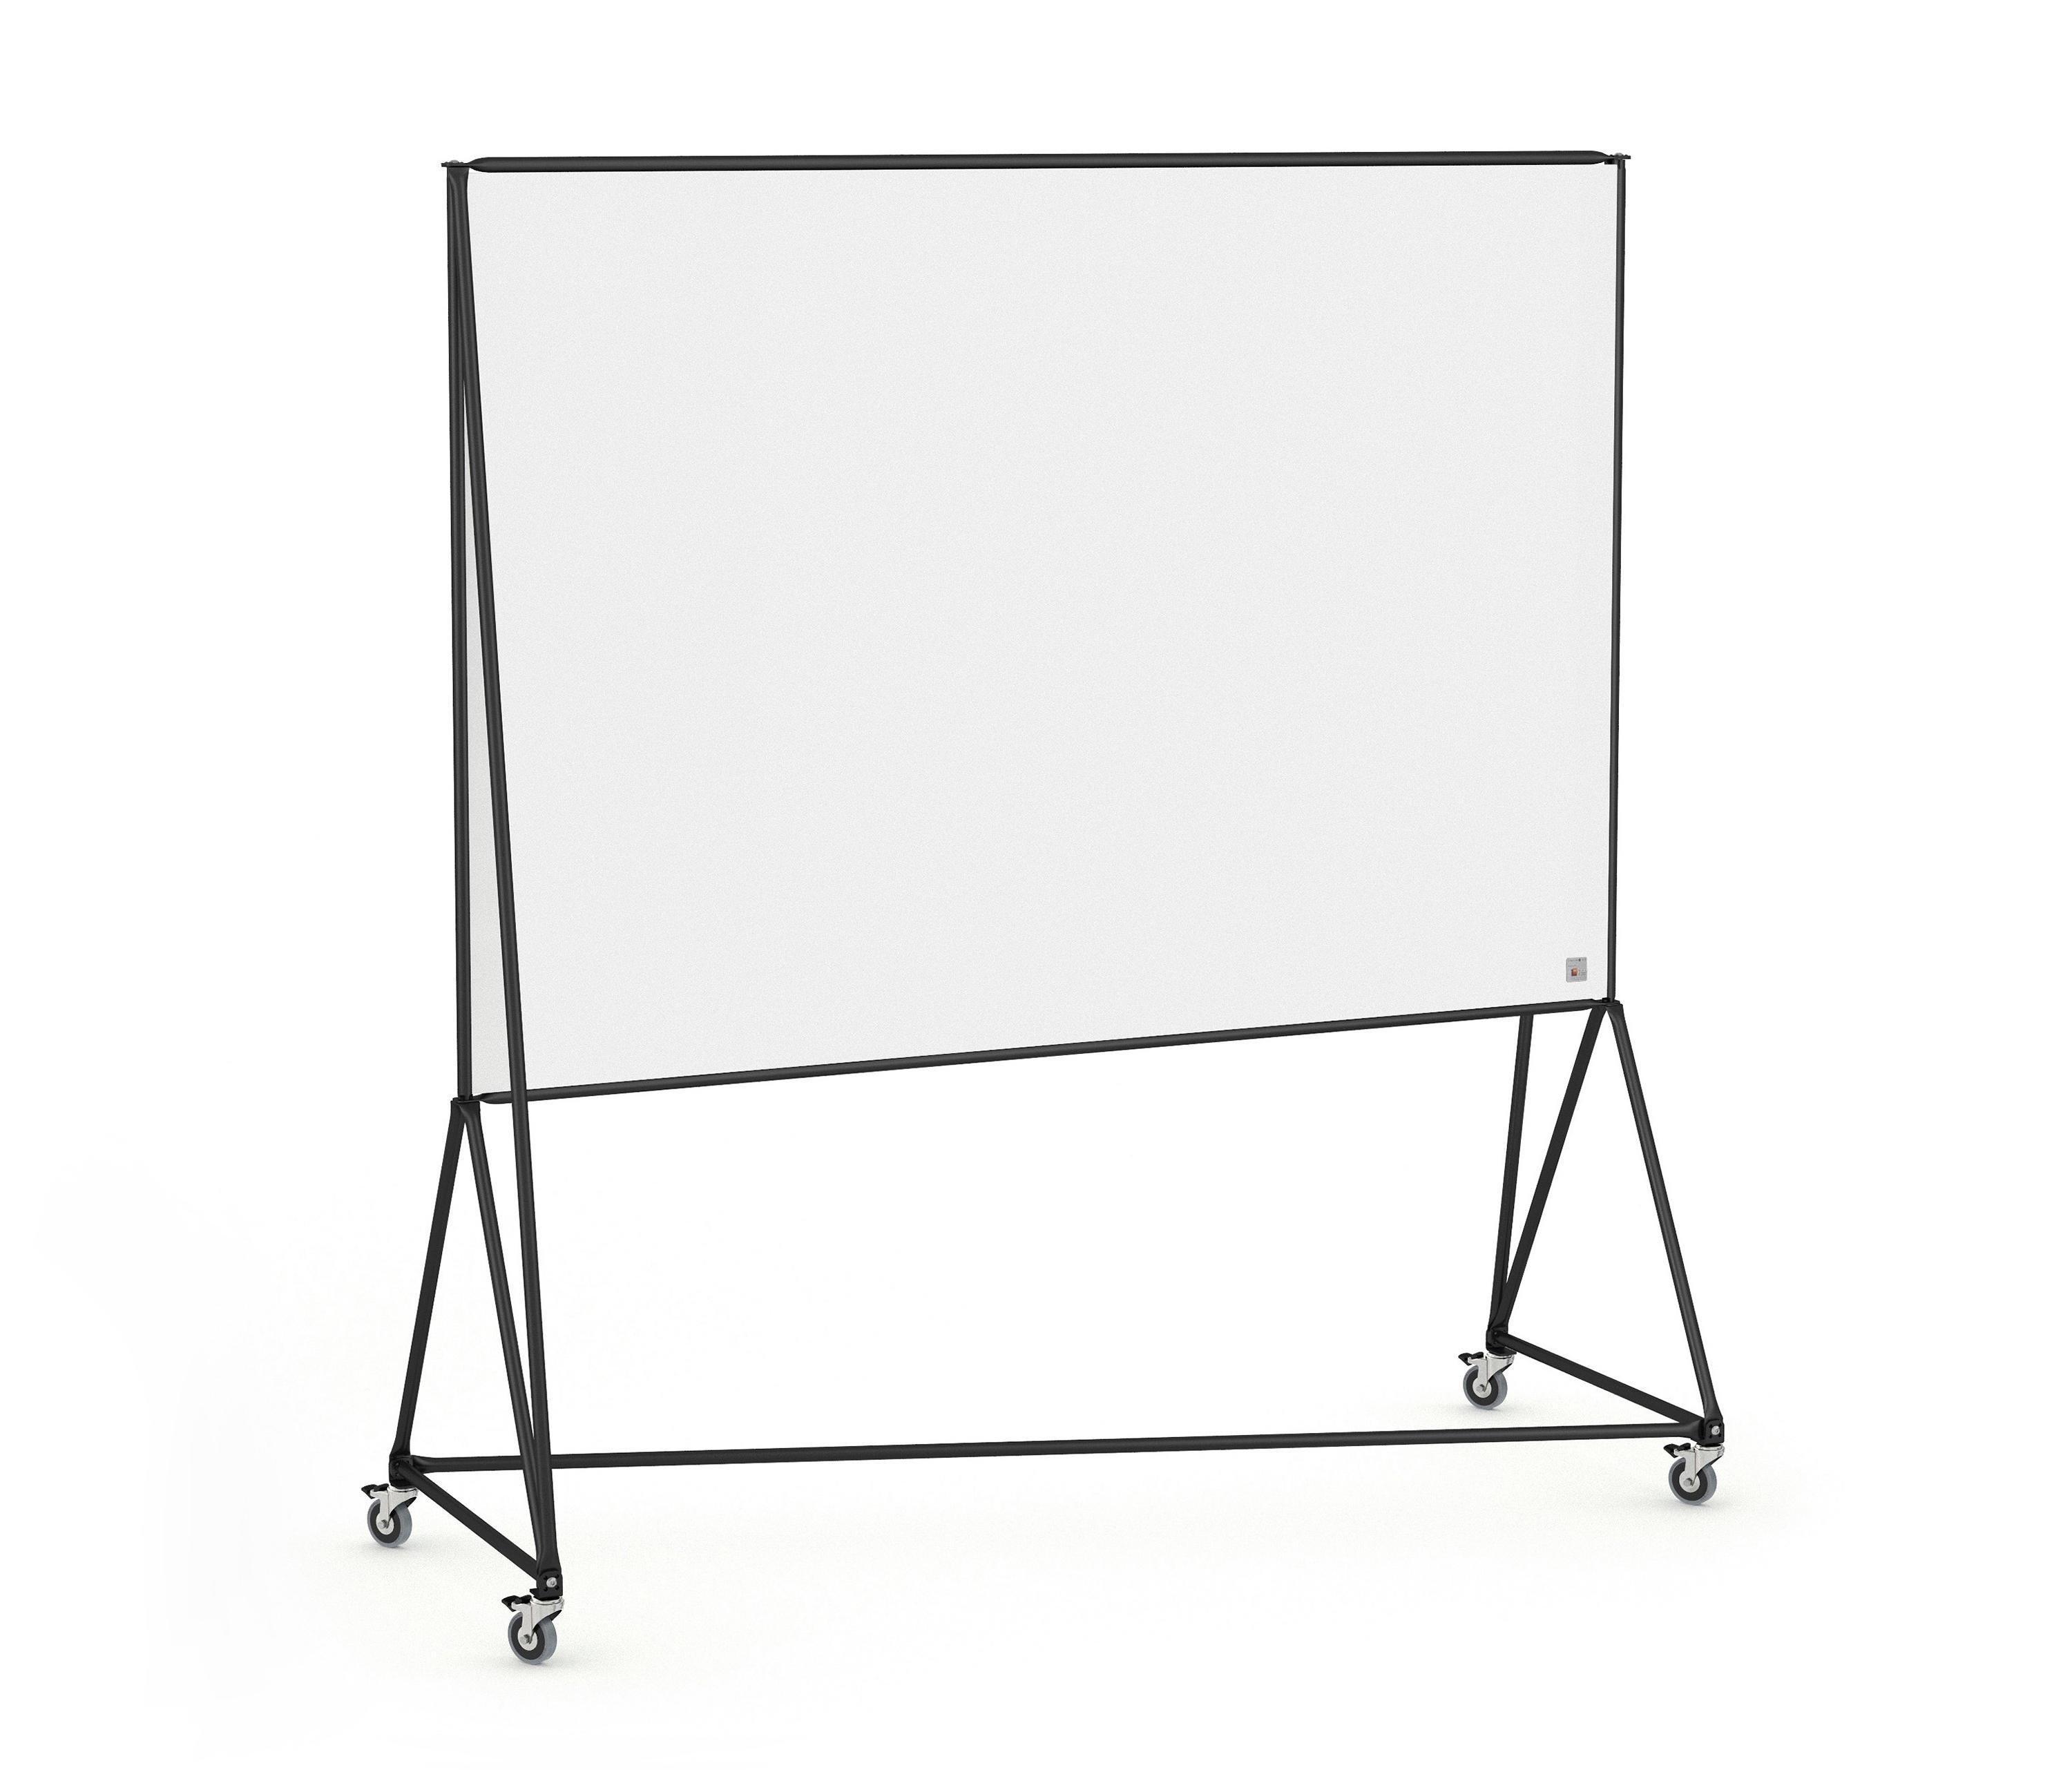 Bathroom Paneling Whiteboard 201x300.jpg DT-Line Whiteboard L by System 180 | Flip charts - Writing boards ...